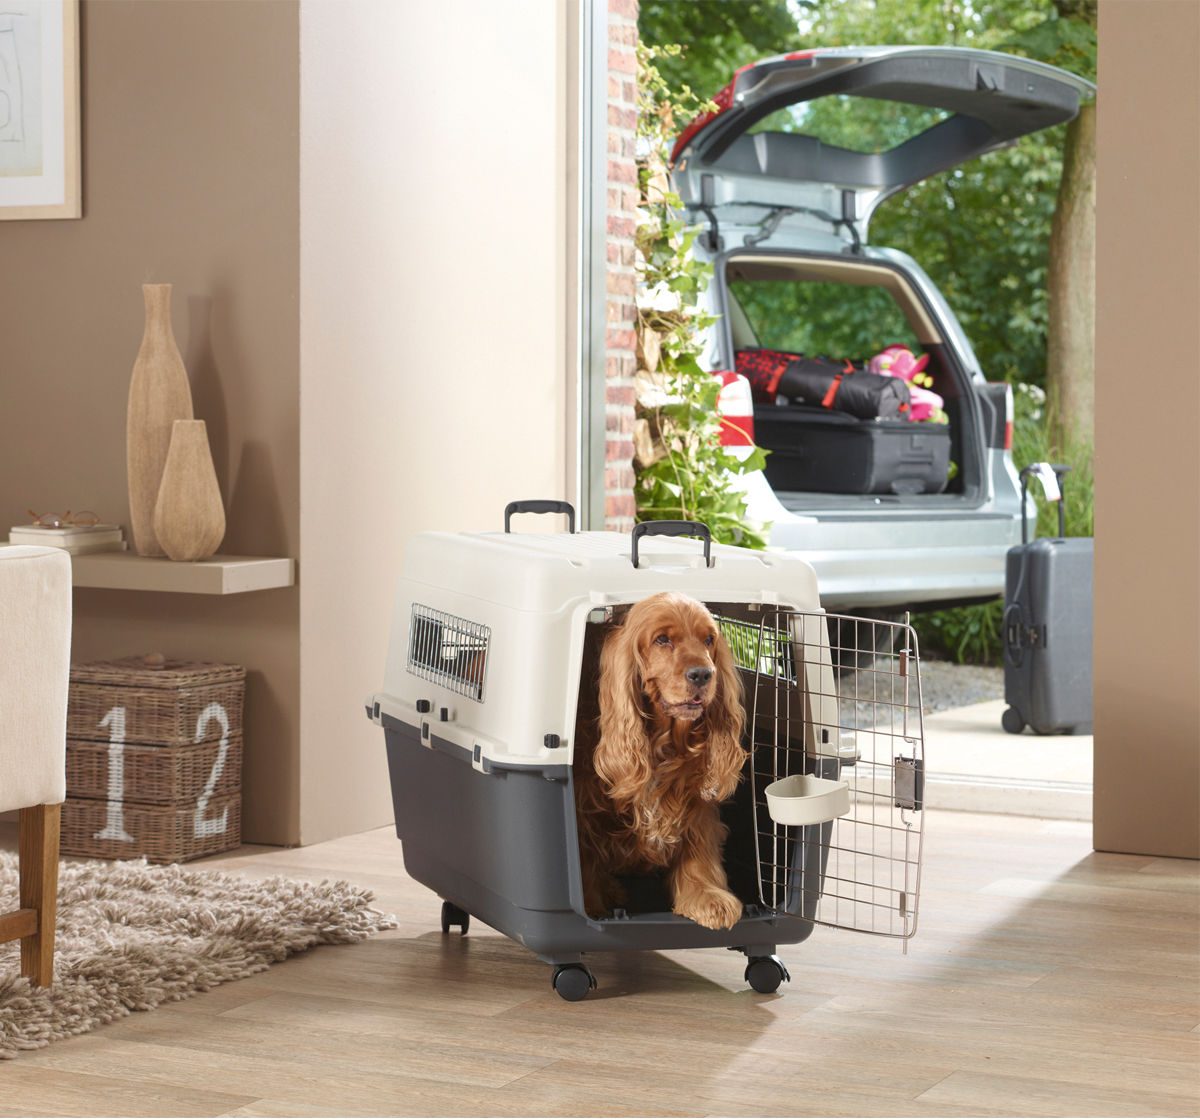 Savic Andes Dog Carrier 6 - Dark grey/Ivory - XX-Large - (LxWxH - 90x60.9x68.5 cm)